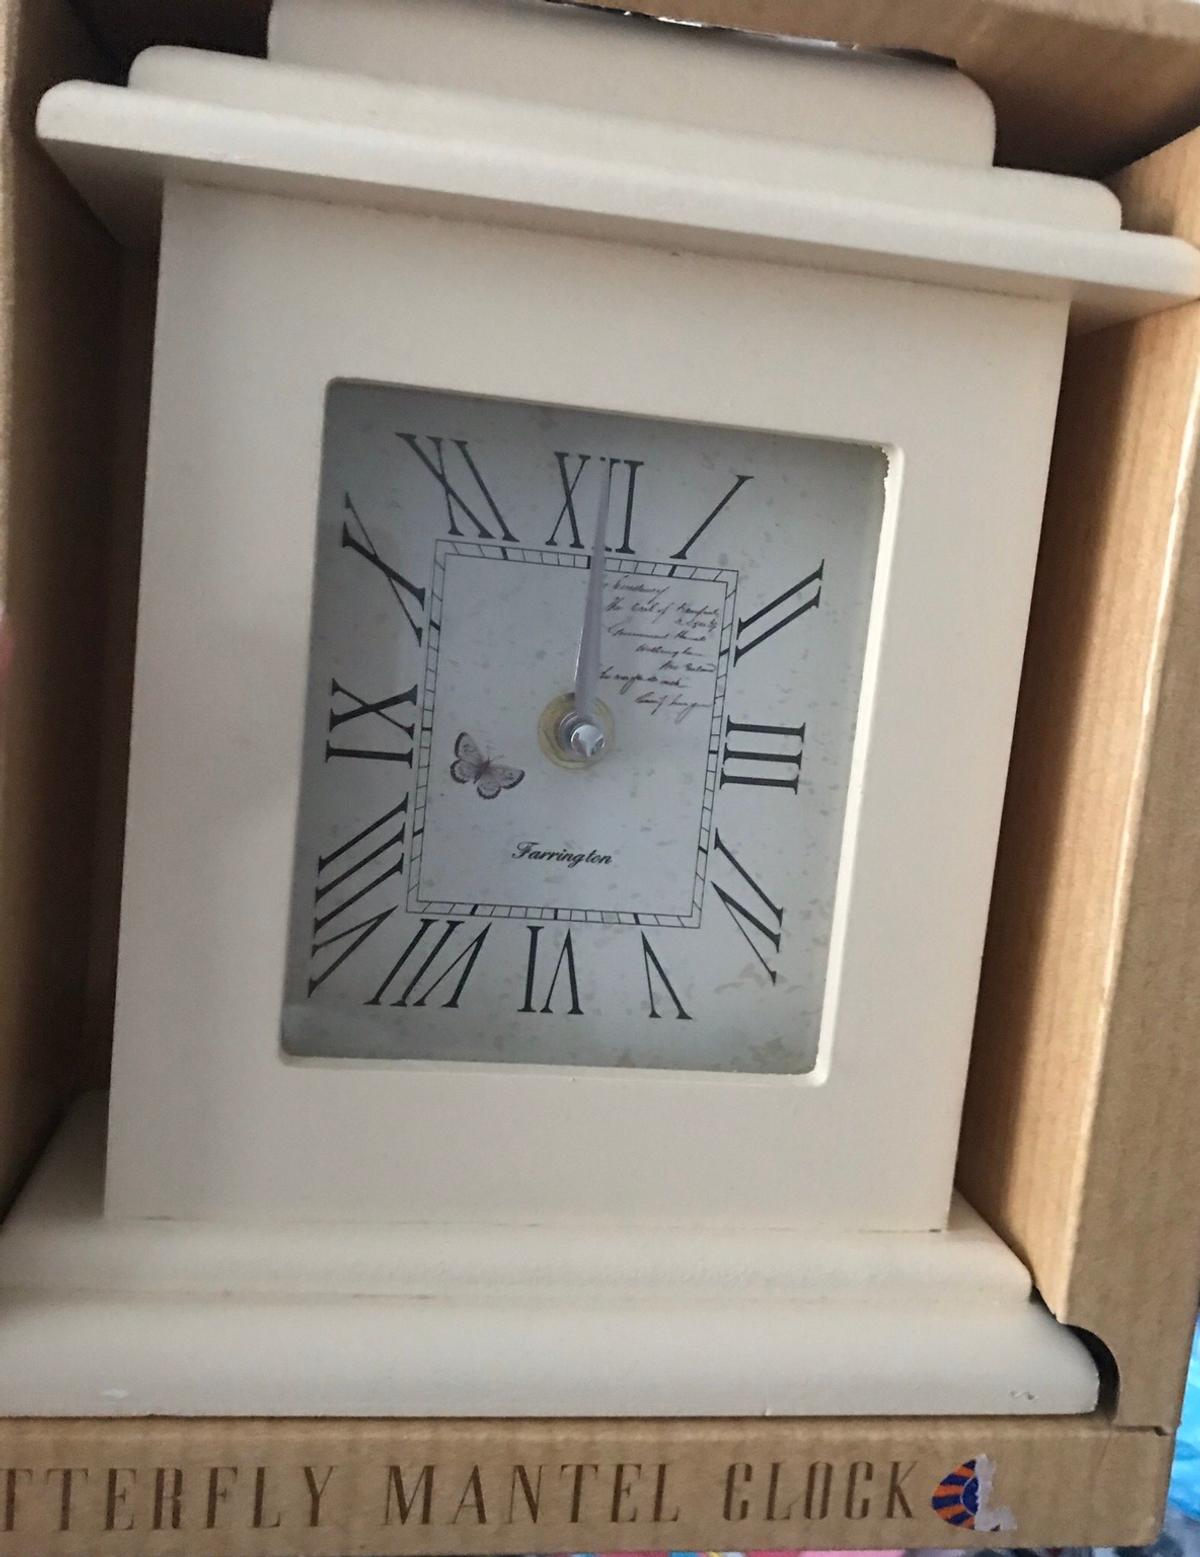 Mantle clock collect b27 no offers